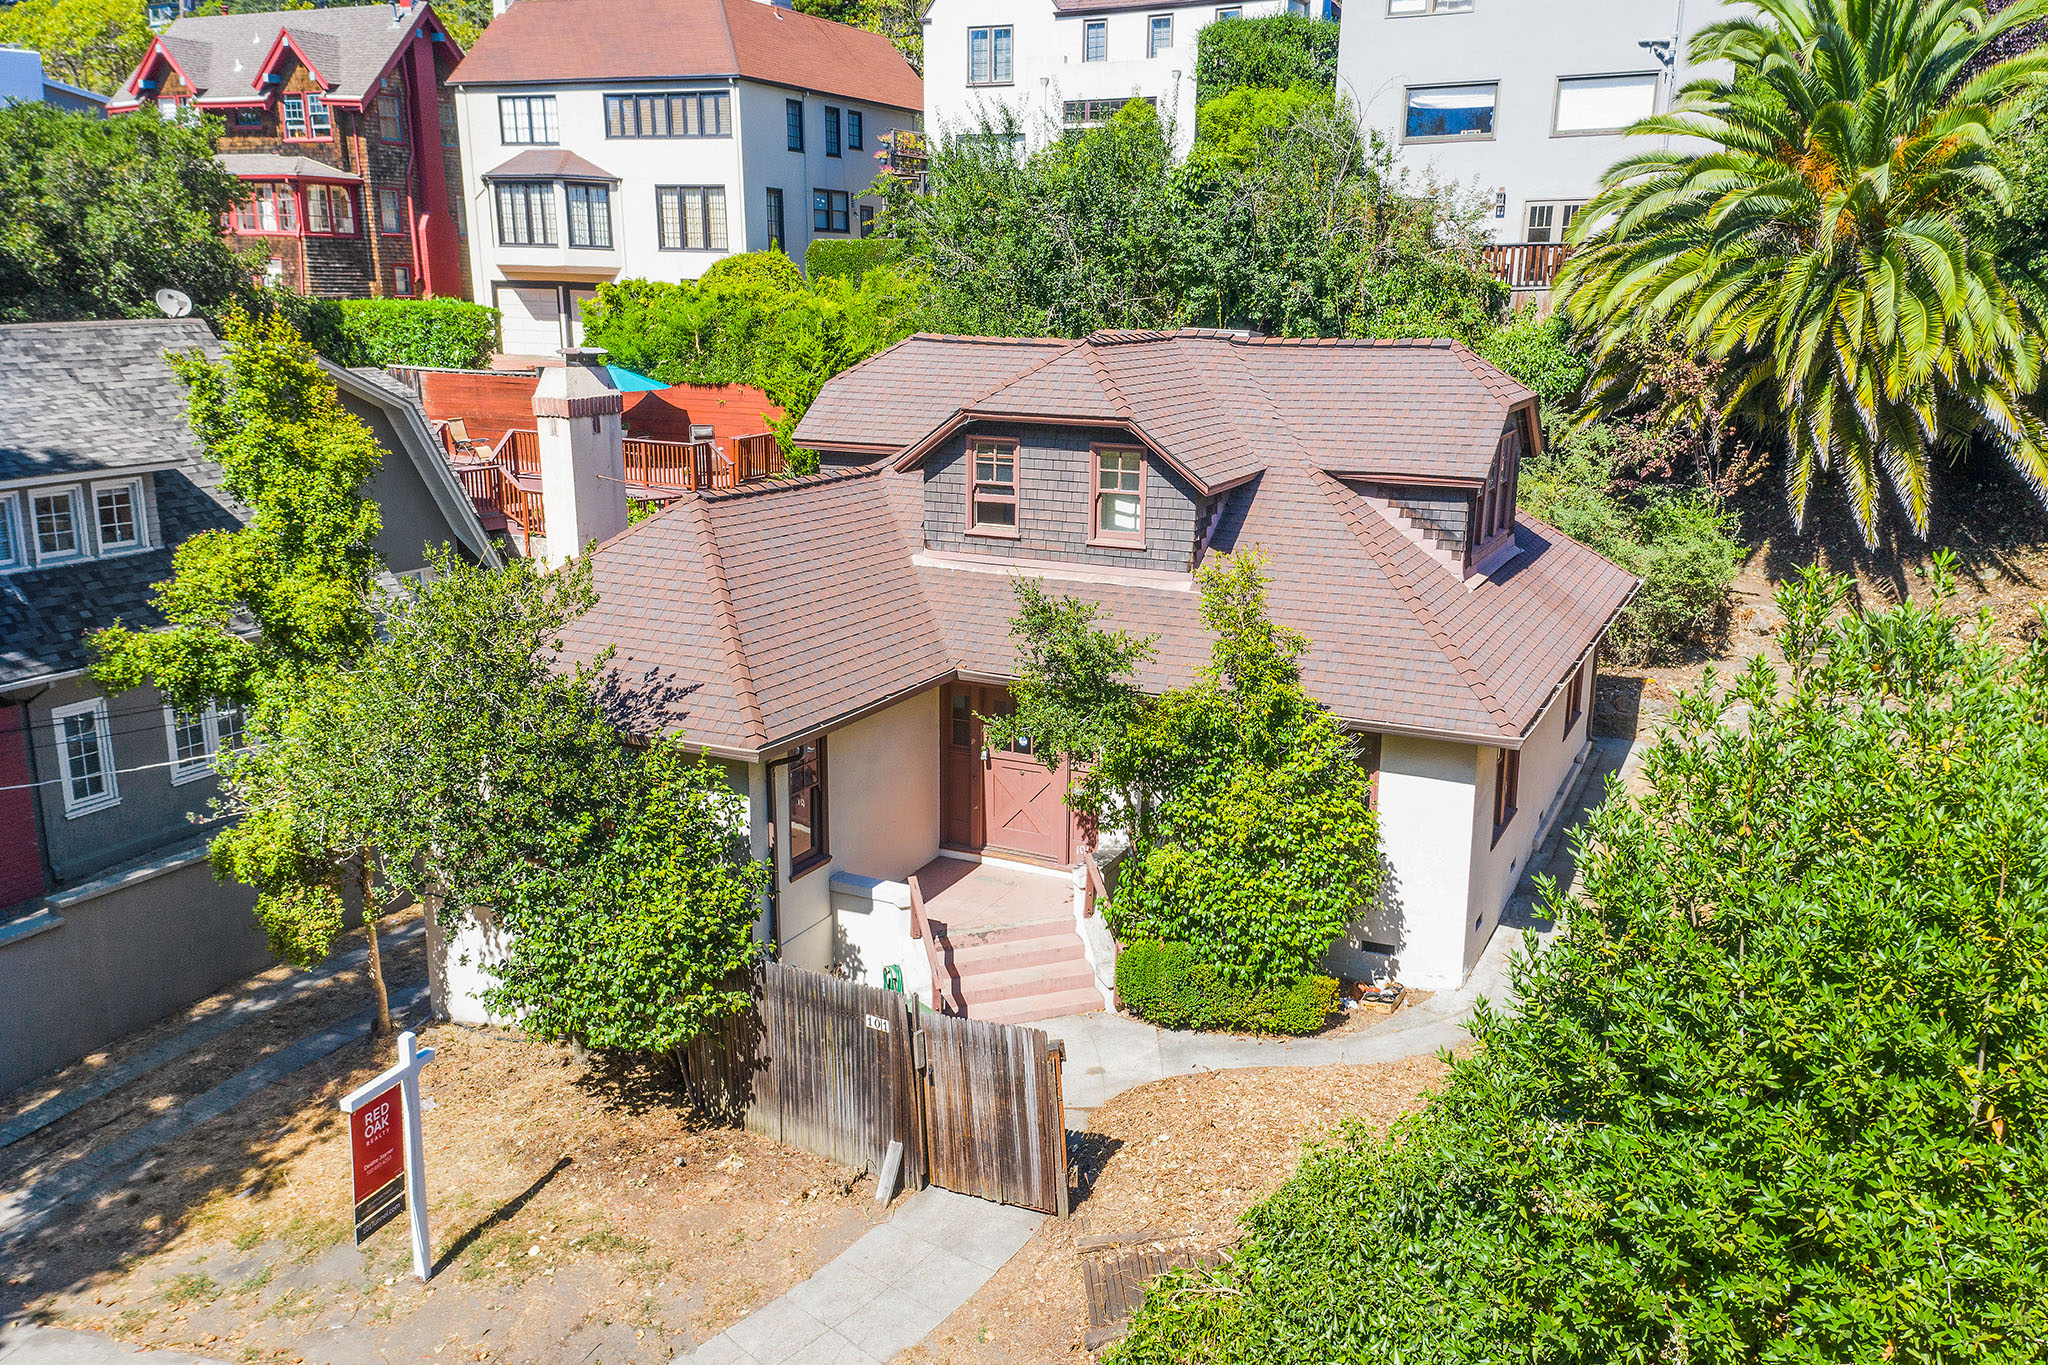 SFGate.com | Aug 2019 | What would you do with this historic Berkeley fixer near the Claremont Resort?